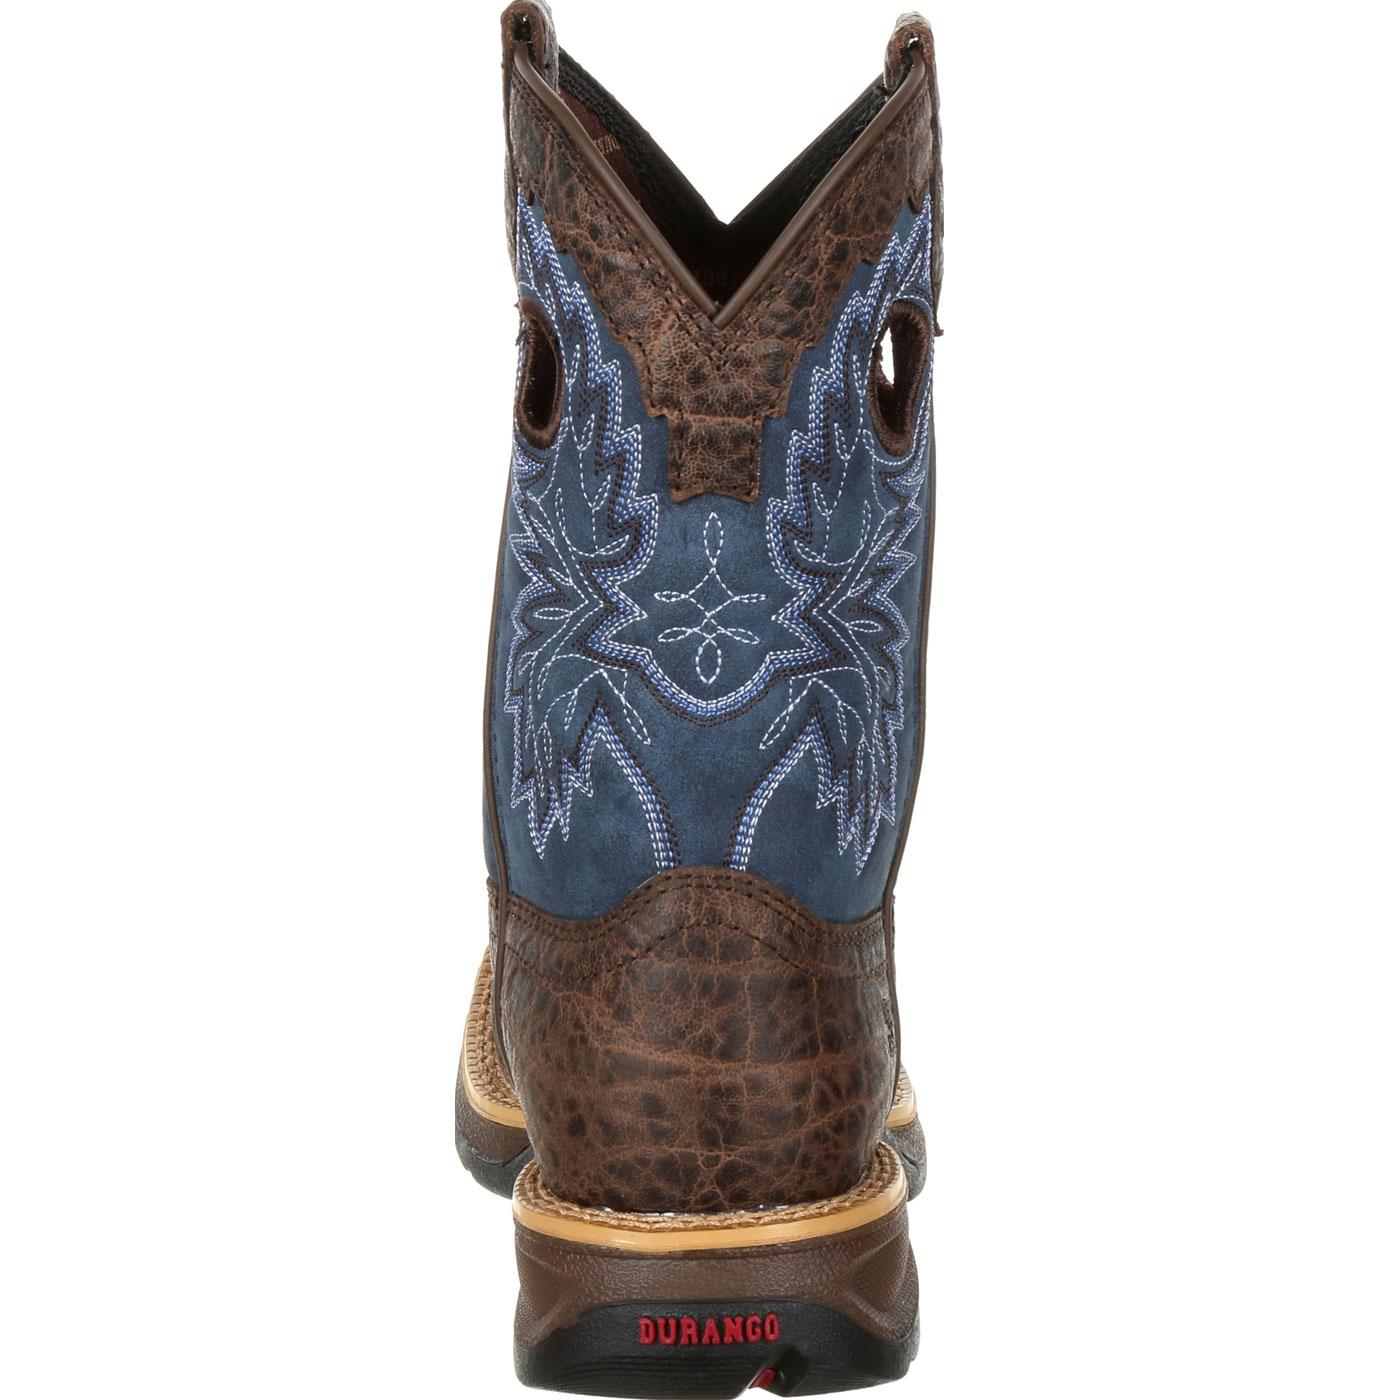 6acfb556cbdba Images. Lil' Rebel by Durango Little Kids Faux Exotic Western Boot ...